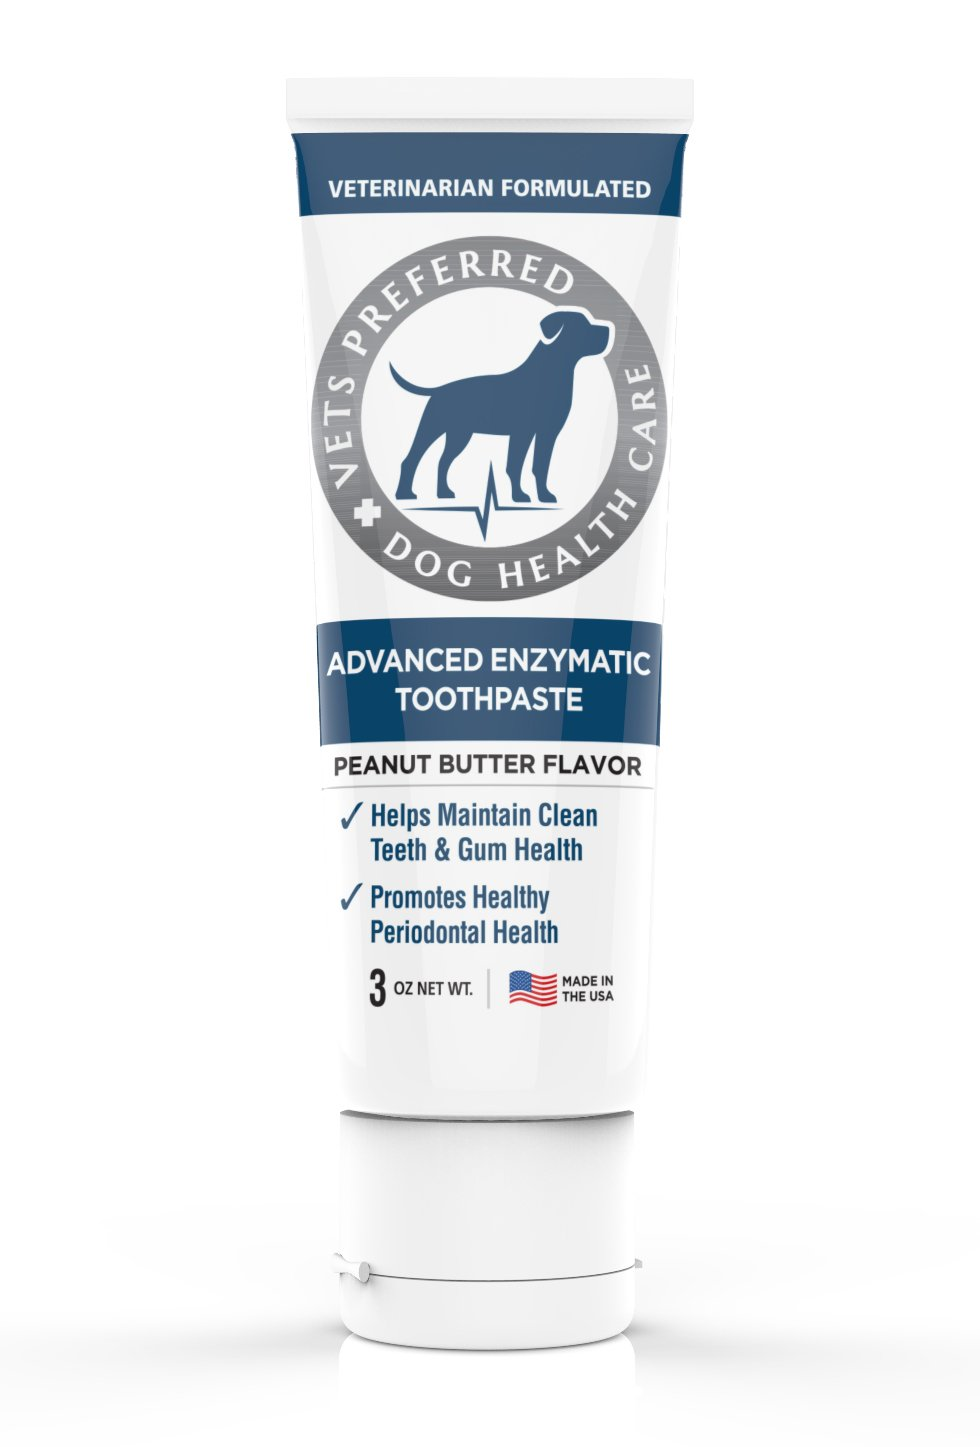 Vets Preferred Brand New! Advanced Enzymatic Toothpaste for Dogs - VETERINARIAN-GRADE, Safe and Natural Dog Toothpaste - Freshens Dog Breath, Fights Plaque And Reduces Tartar, Peanut Butter Flavor